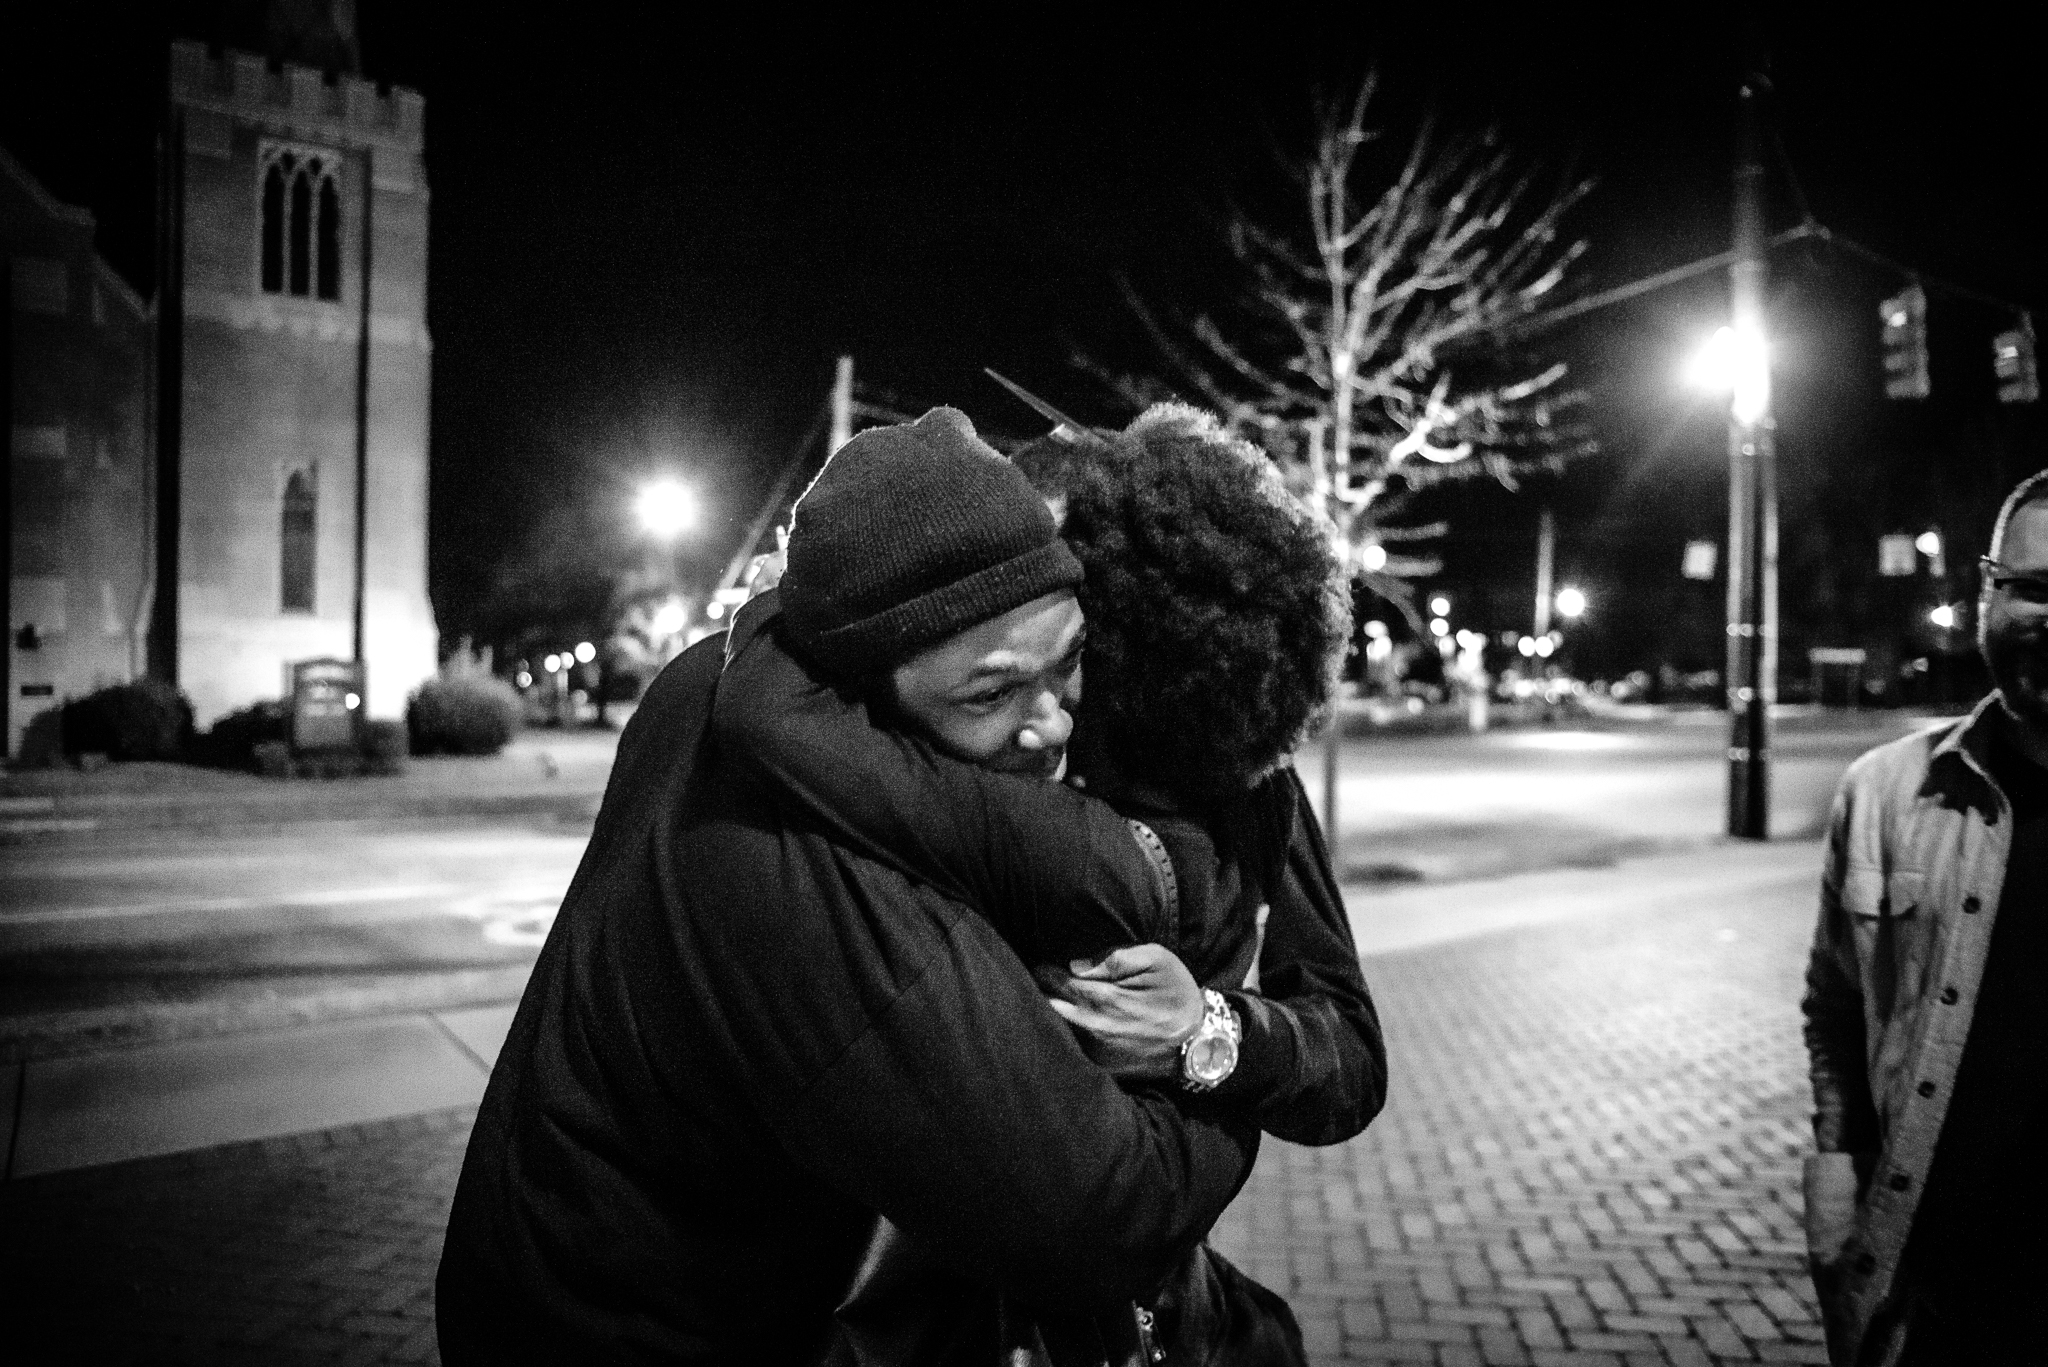 Nocola Hemphill hugs a fellow member of Tom Steyer's campaign team in Columbia , South Carolina. February 29, 2020. Photo: Lance Monotone.